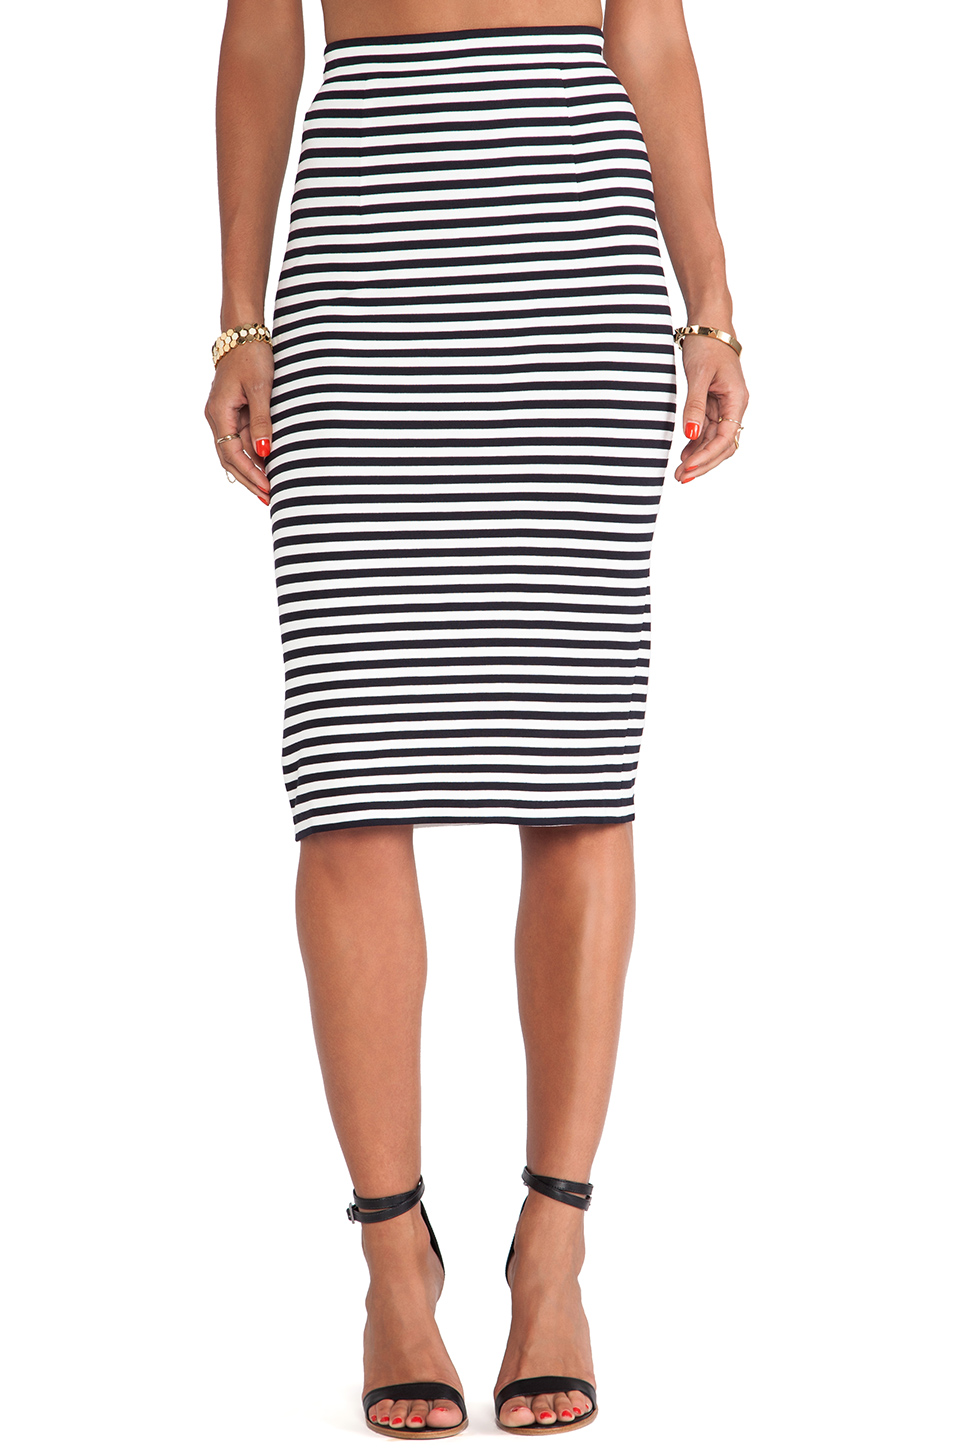 Tibi Racertrack Stripe Skirt in Black Multi | REVOLVE